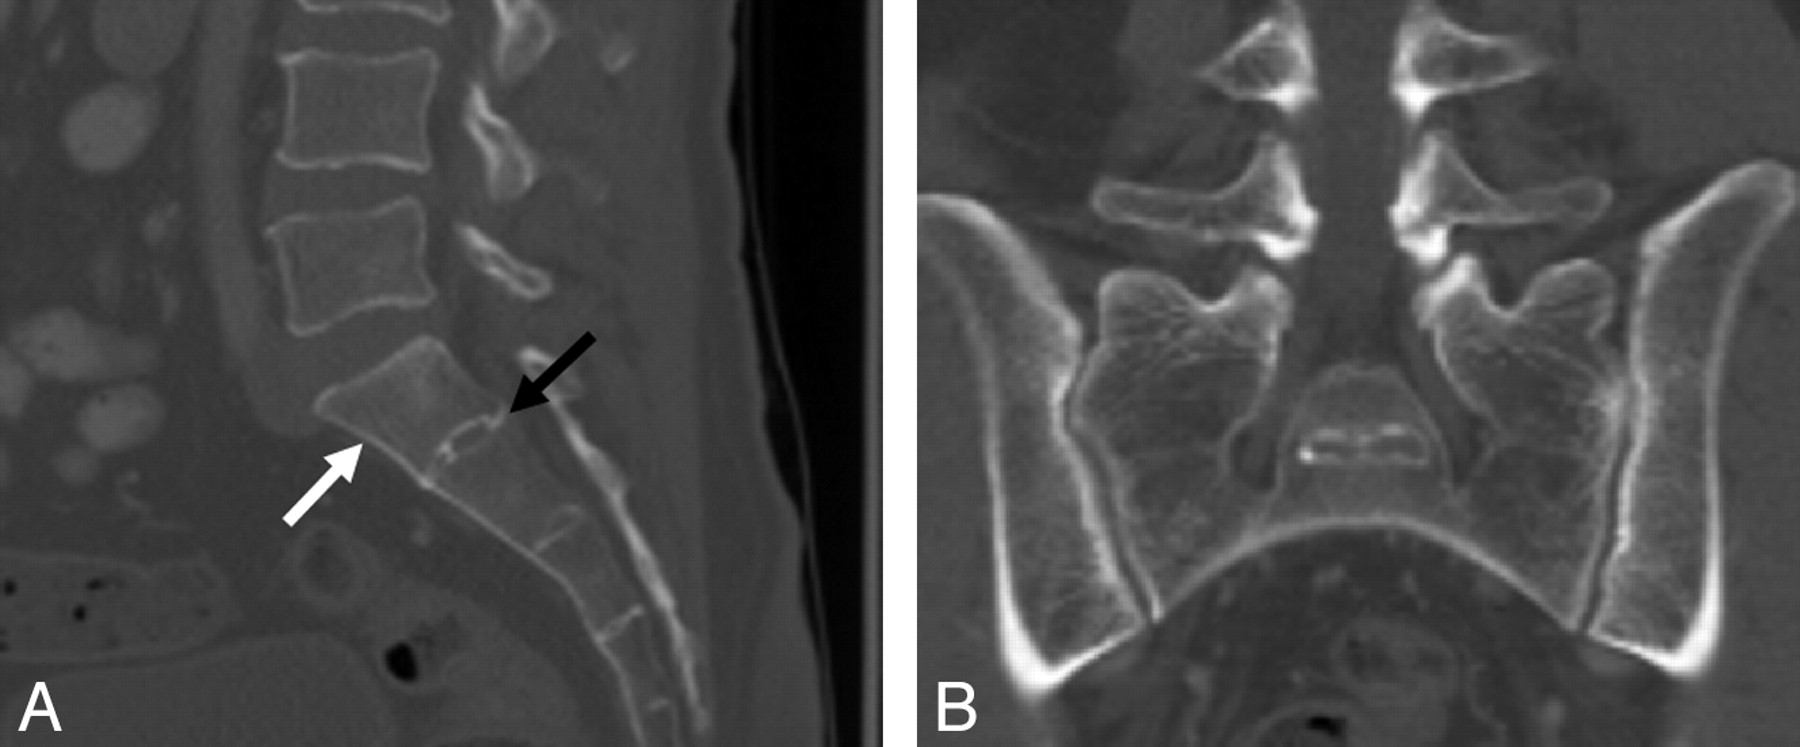 Lumbosacral Transitional Vertebrae Classification Imaging Findings